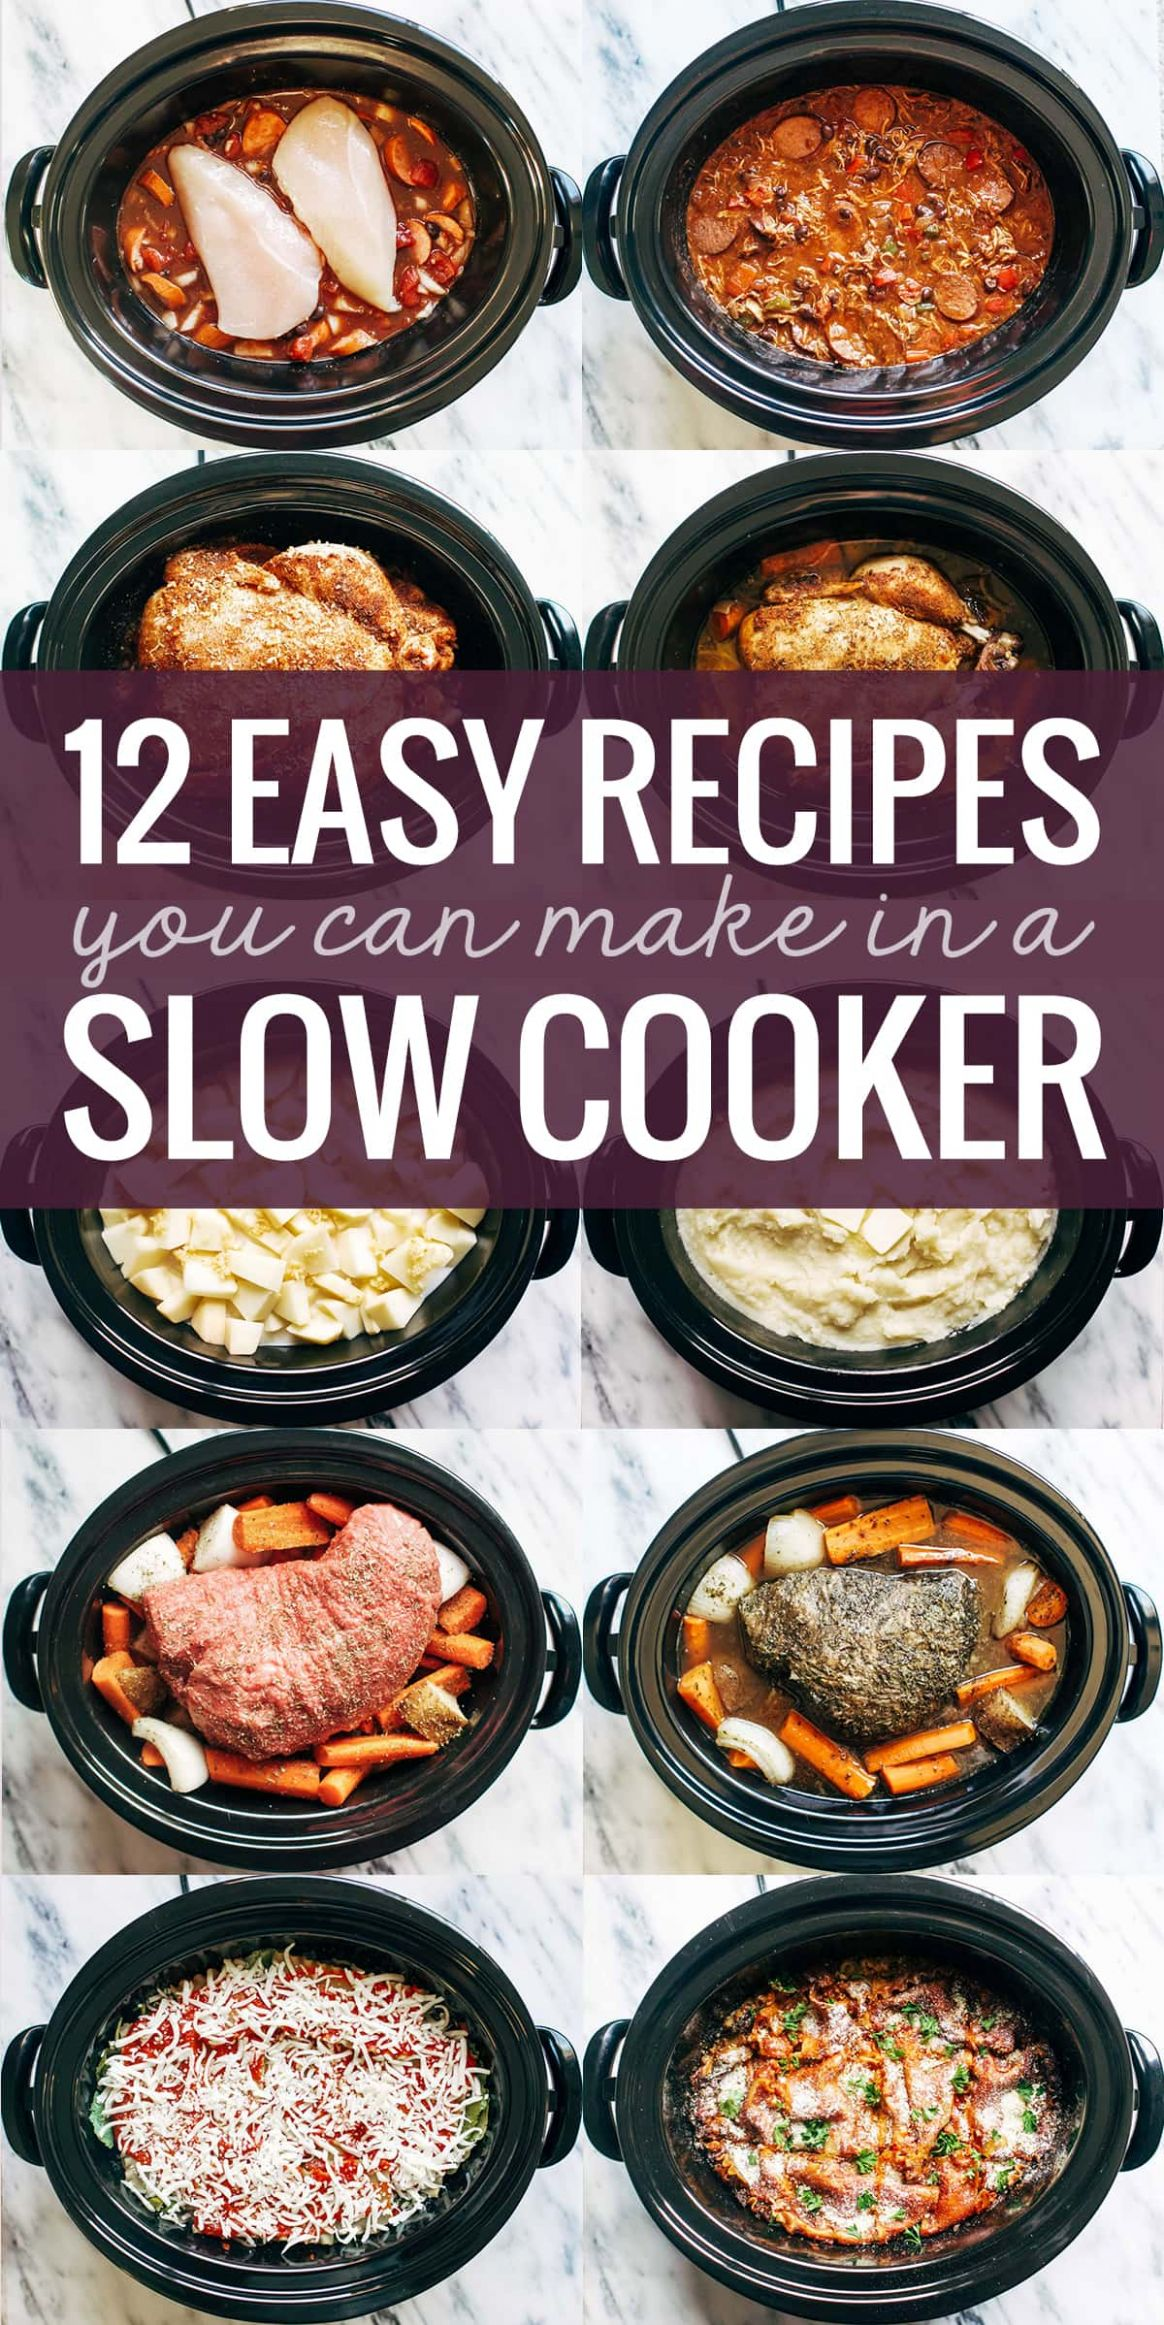 9 Easy Recipes You Can Make in a Slow Cooker - Pinch of Yum